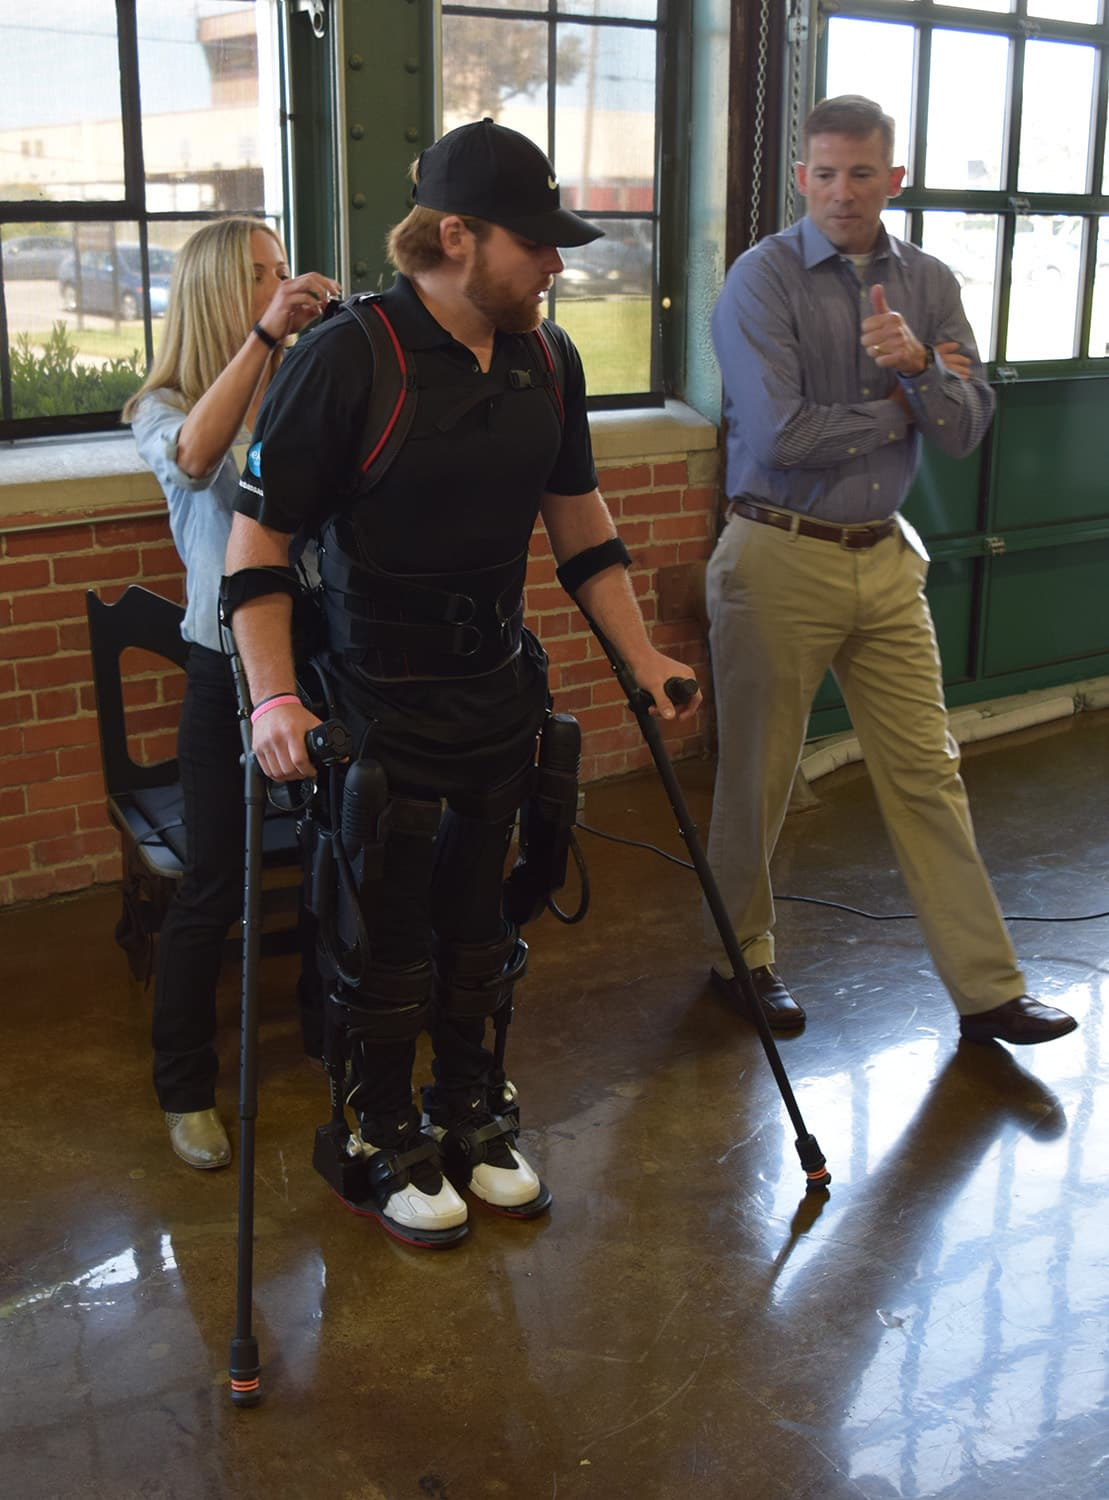 Demonstration of the Ekso GT by Shane Mosko and physical therapist Jenn Macievich and Clinical Vice President Darrell Musick at Ekso Bionics HQ, Richmond, 2016